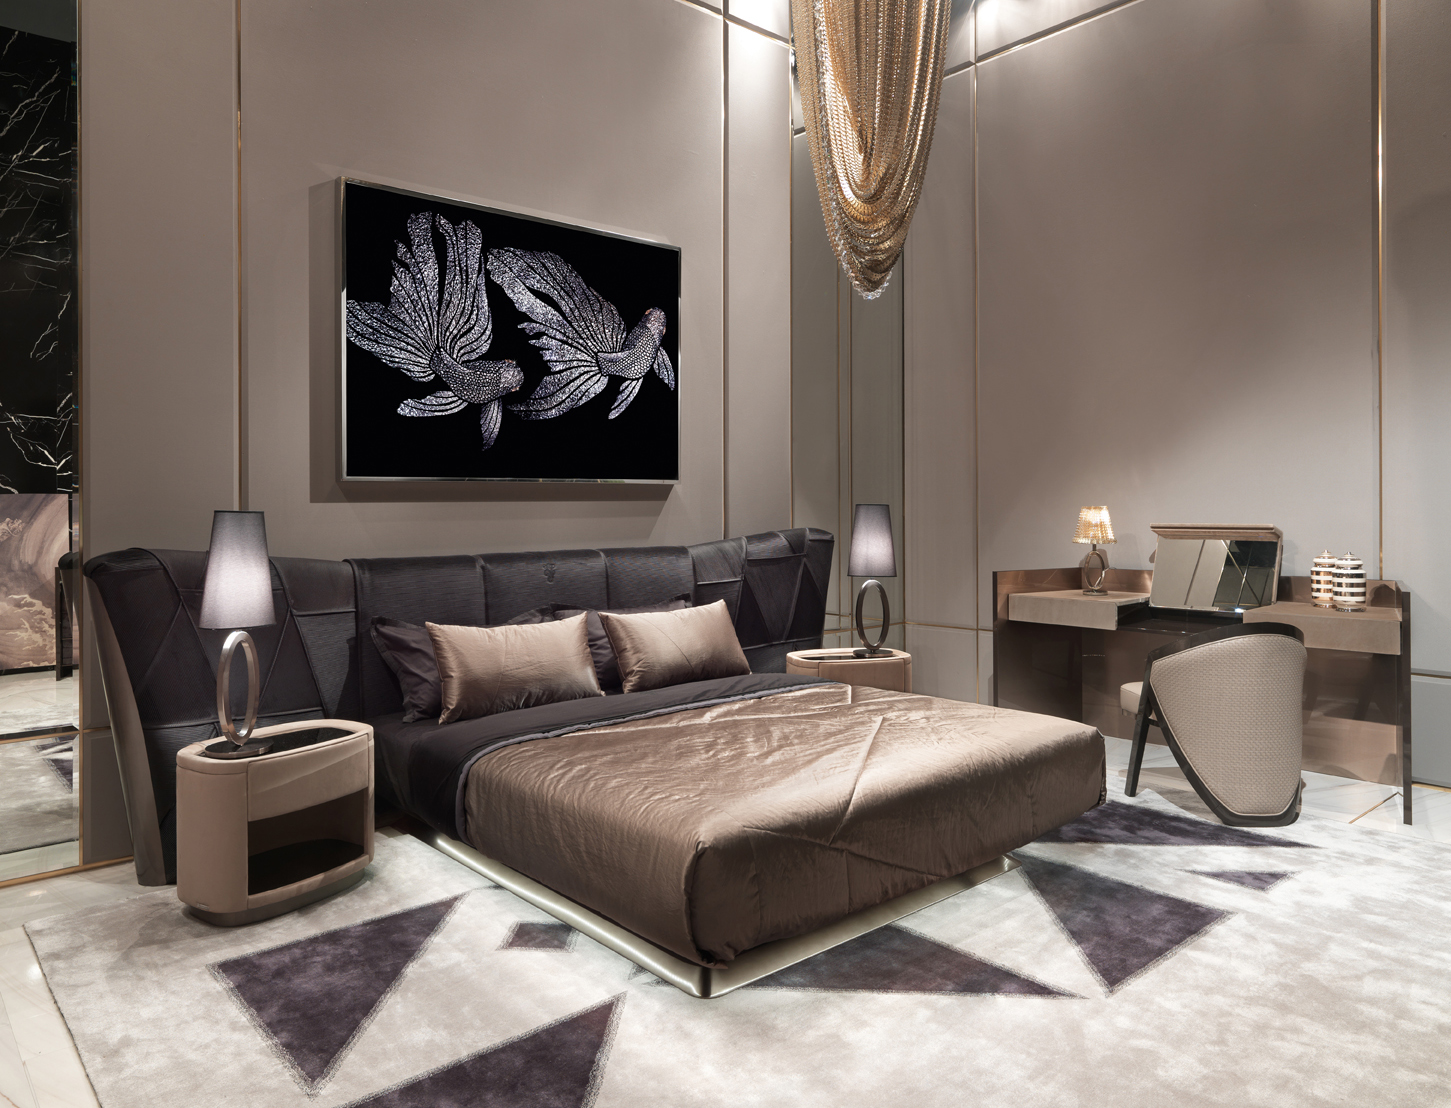 Plaza  Bedroom  Visionnaire Home Philosophy